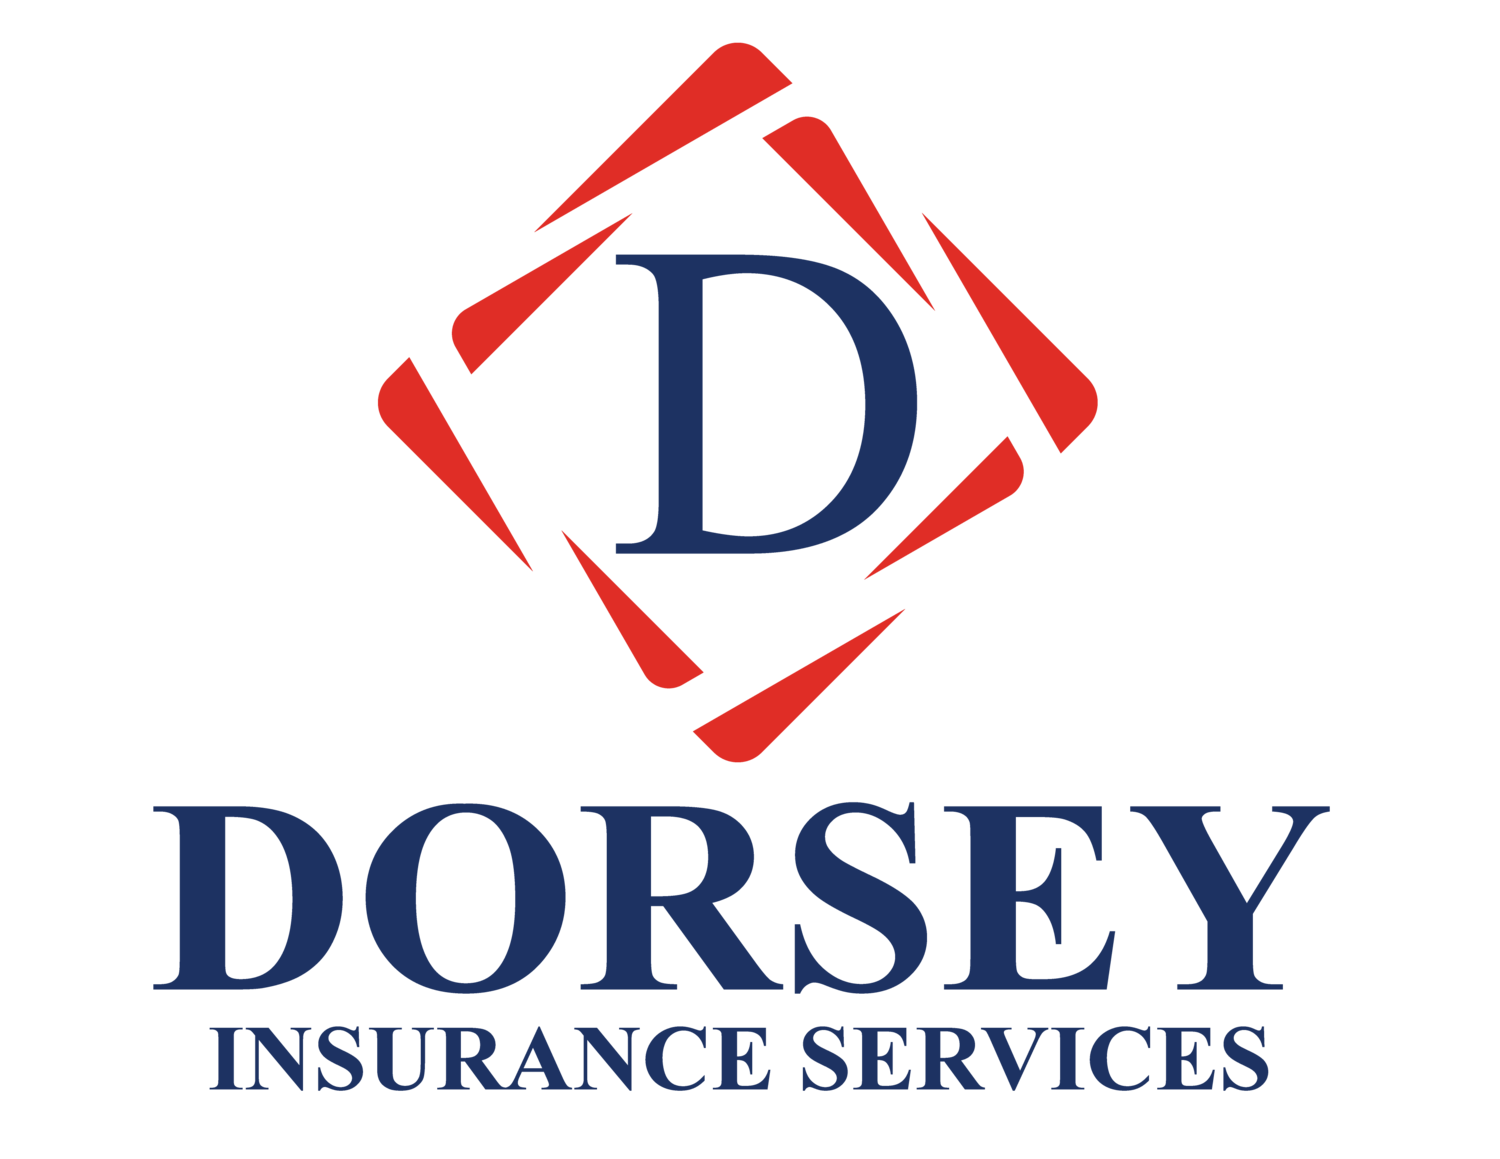 Dorsey Insurance Services